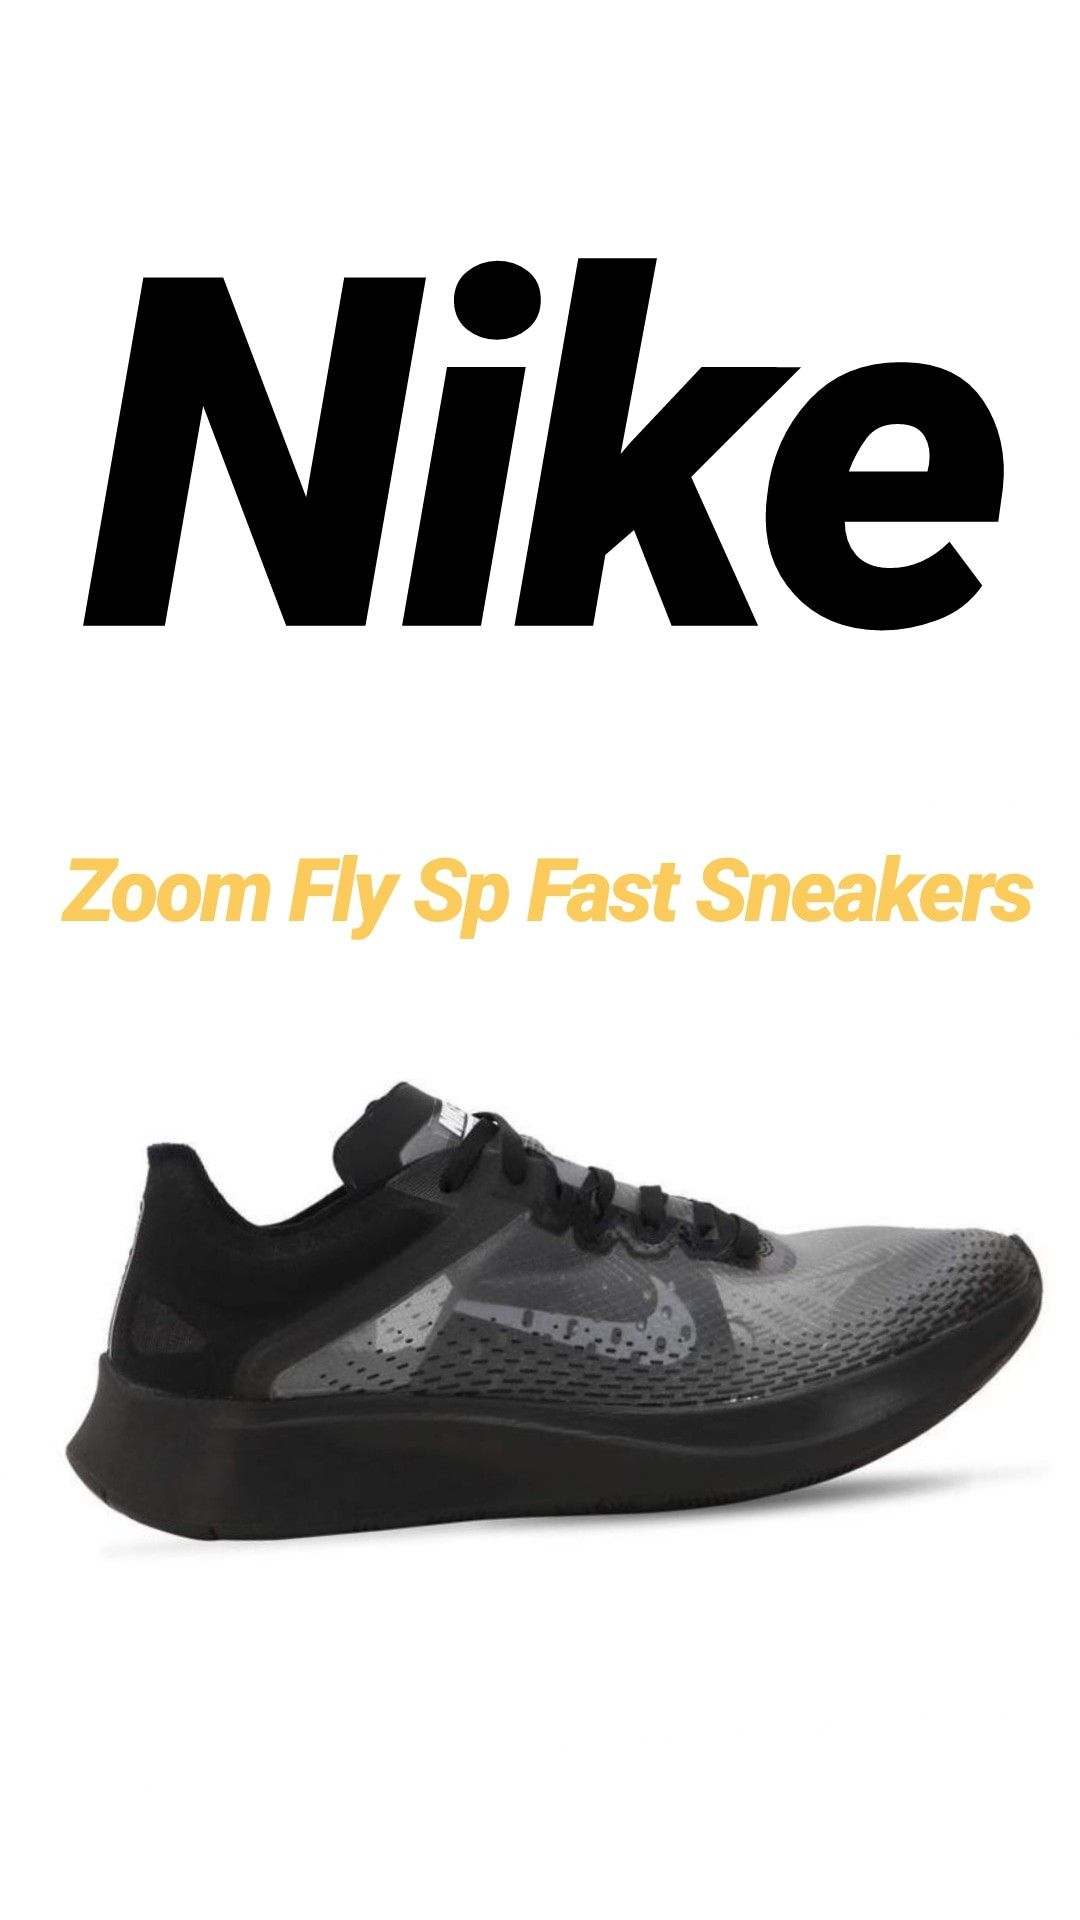 24 Best Men S Casual Outfits Vintagetopia: Nike Zoom Fly Sp Fast Sneakers.